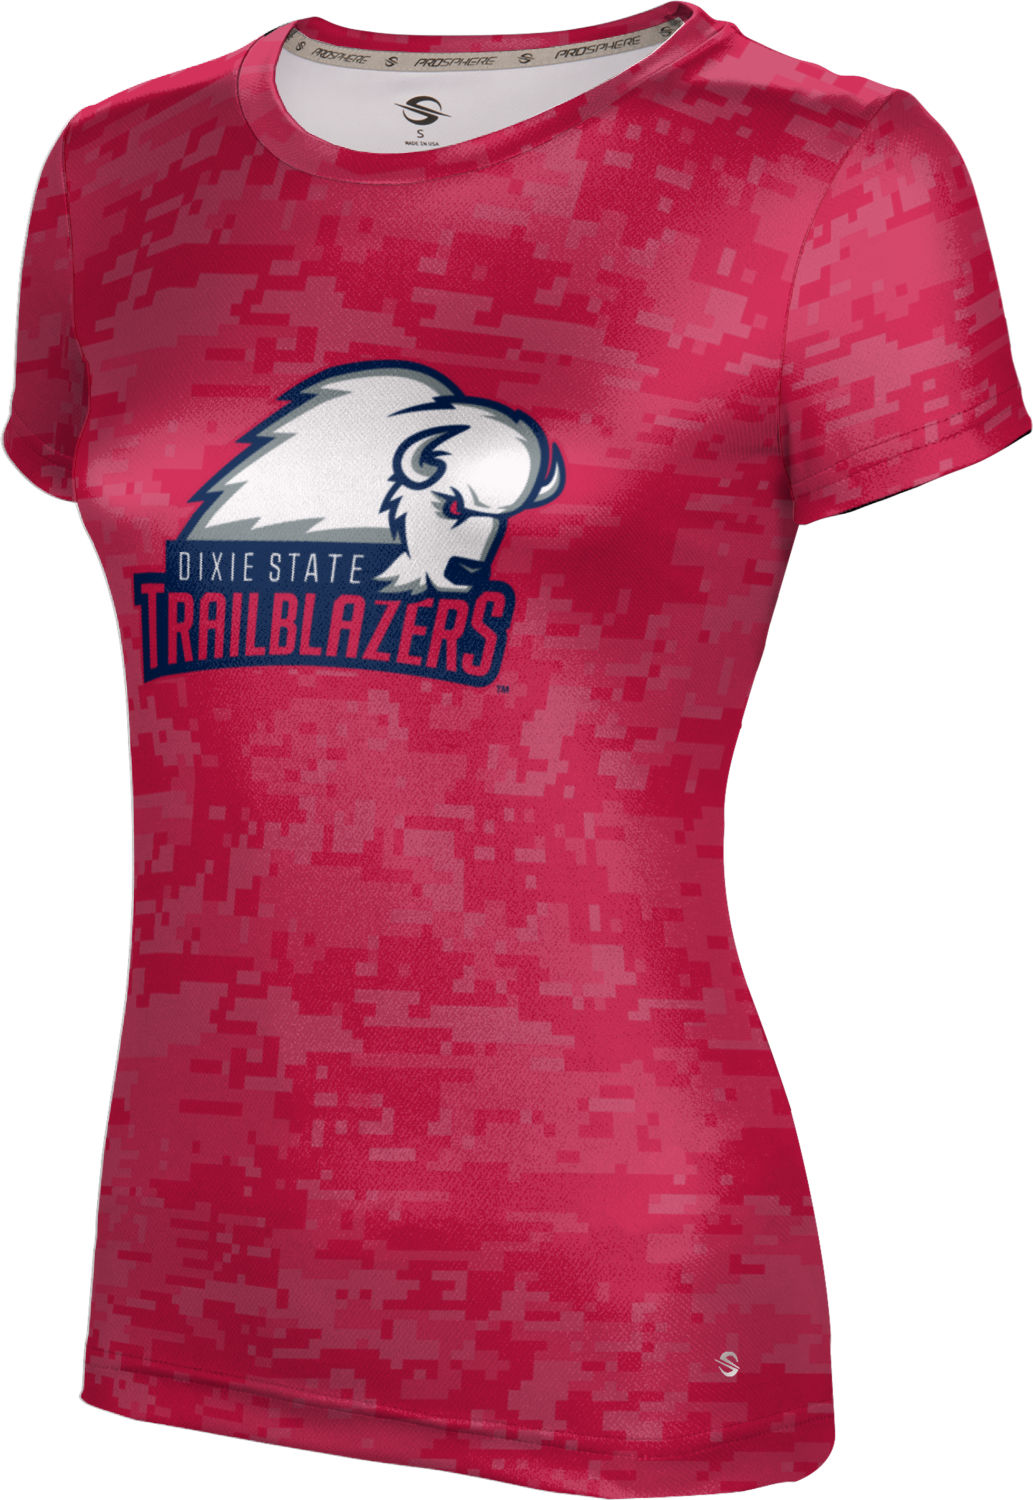 Dixie State University: Women's T-shirt - Digital